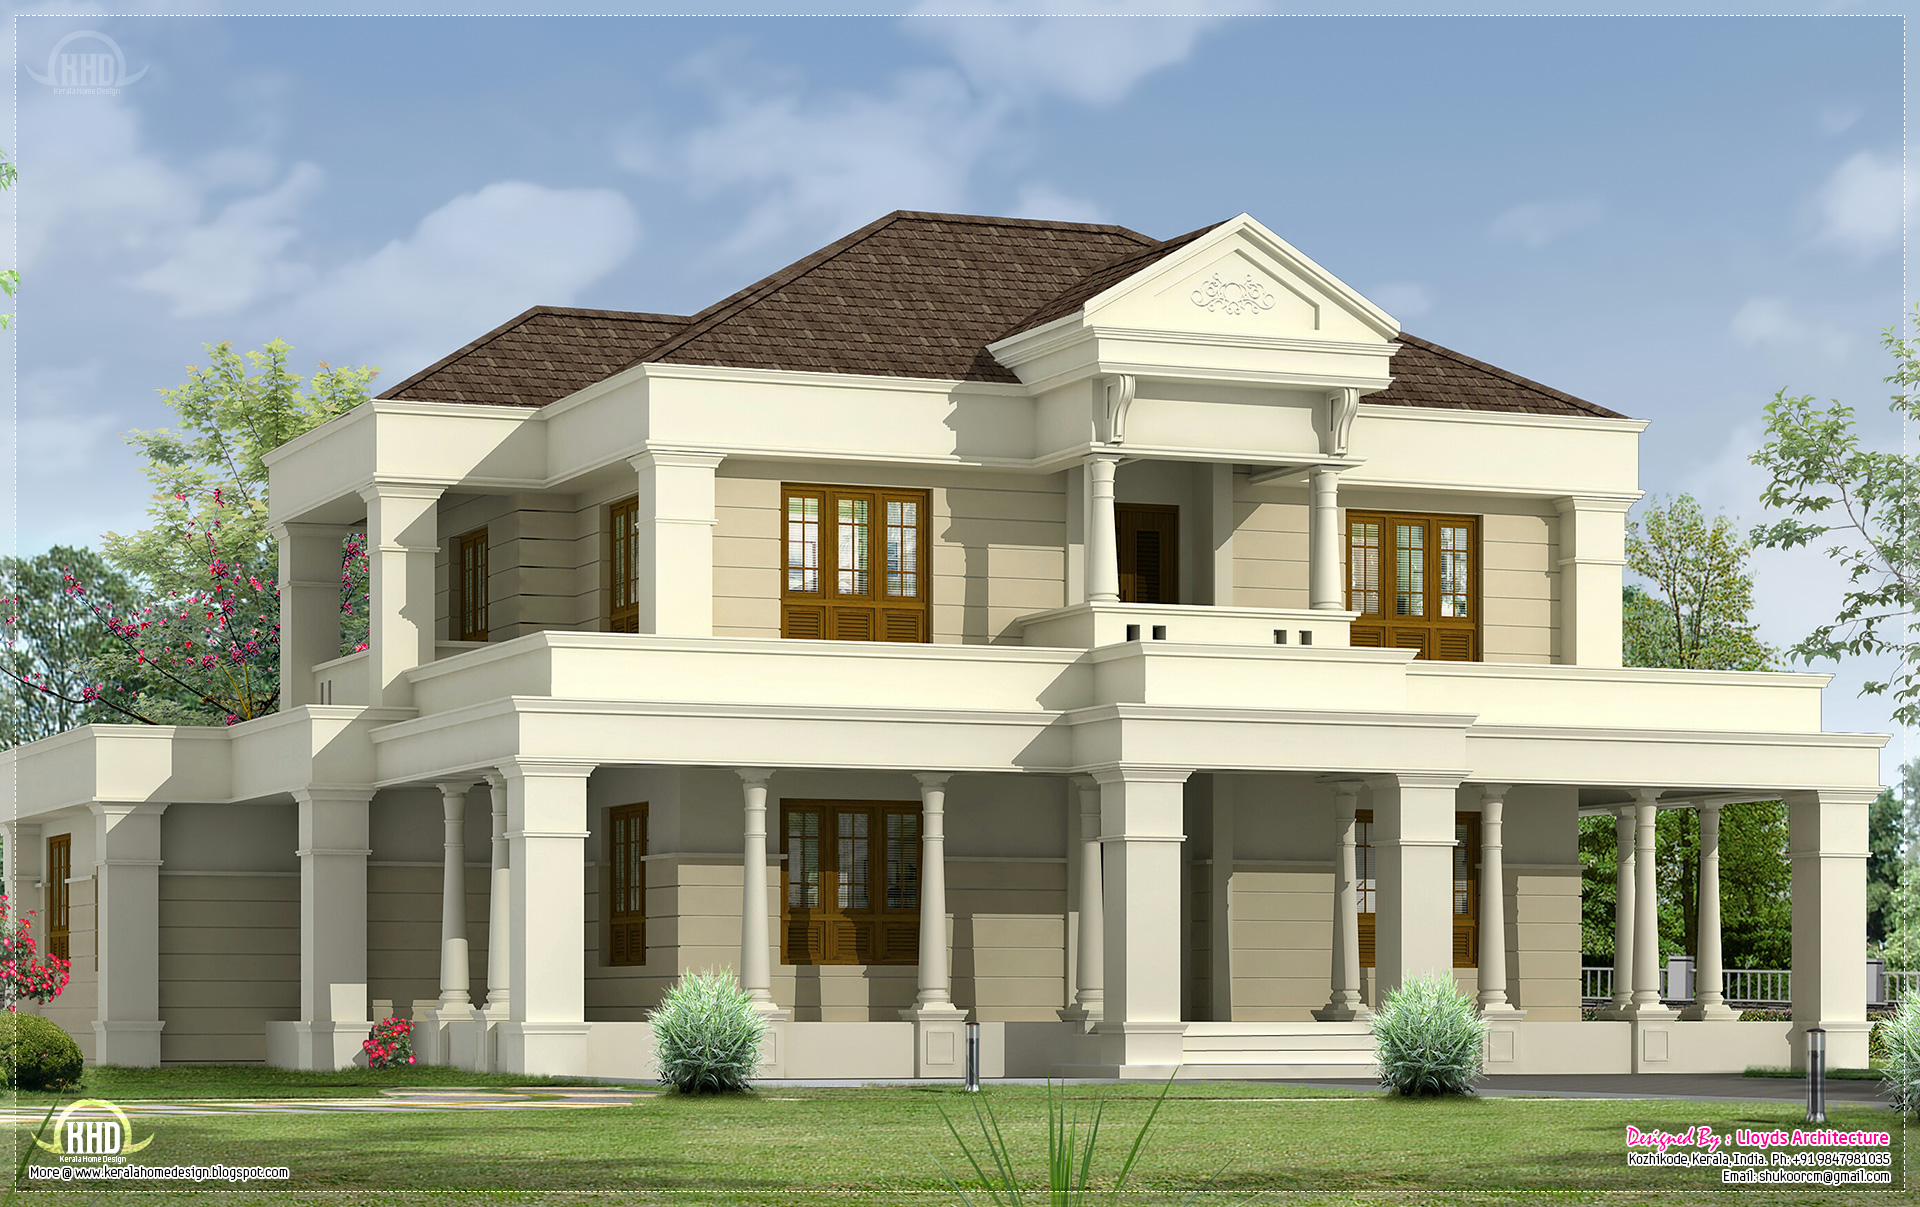 5 bedroom luxurious villa exterior design kerala home for Villas exterior design pictures